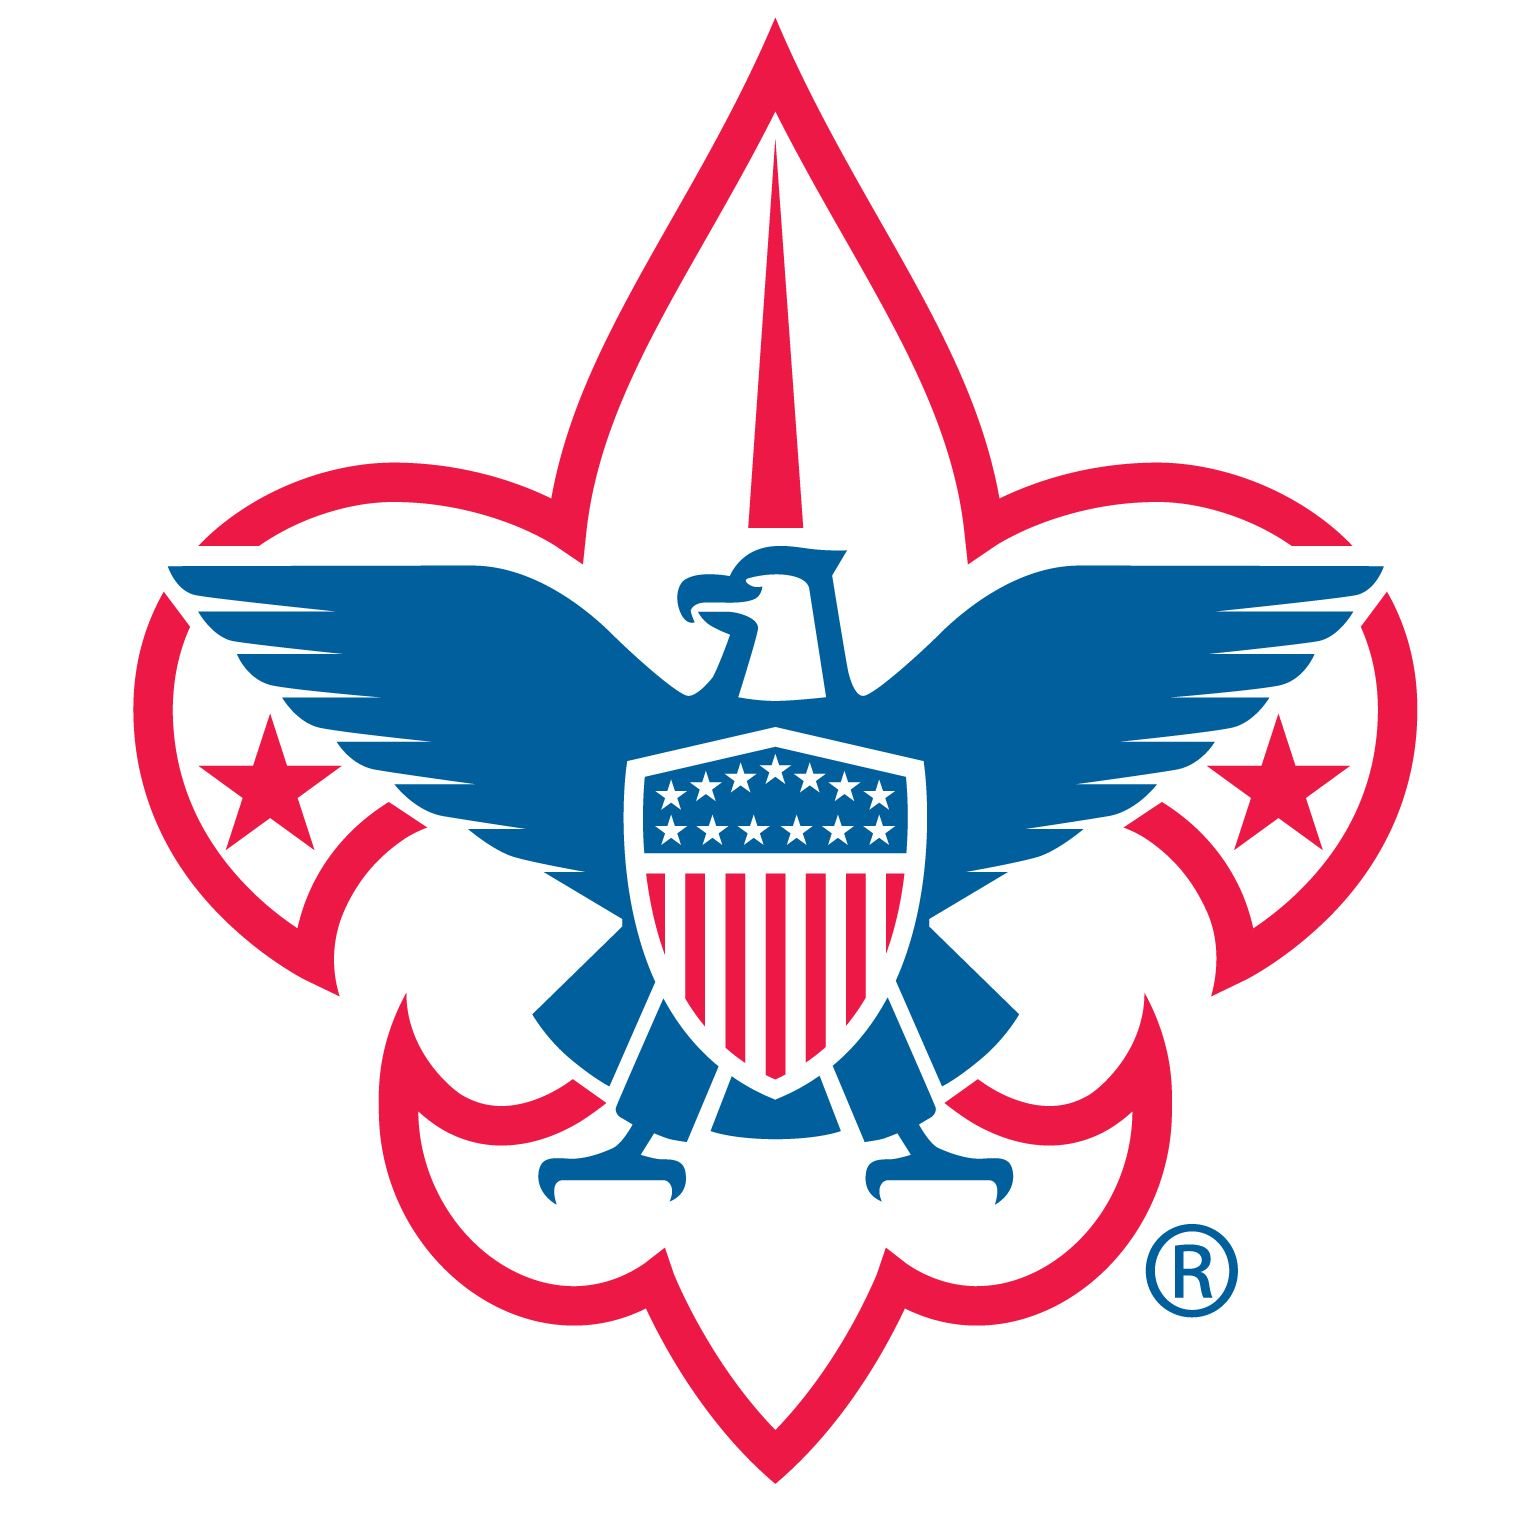 clip art boy scouts of america clip art 1535x1535 jpeg eagle rh pinterest com bsa clip art free printable bsa clipart free